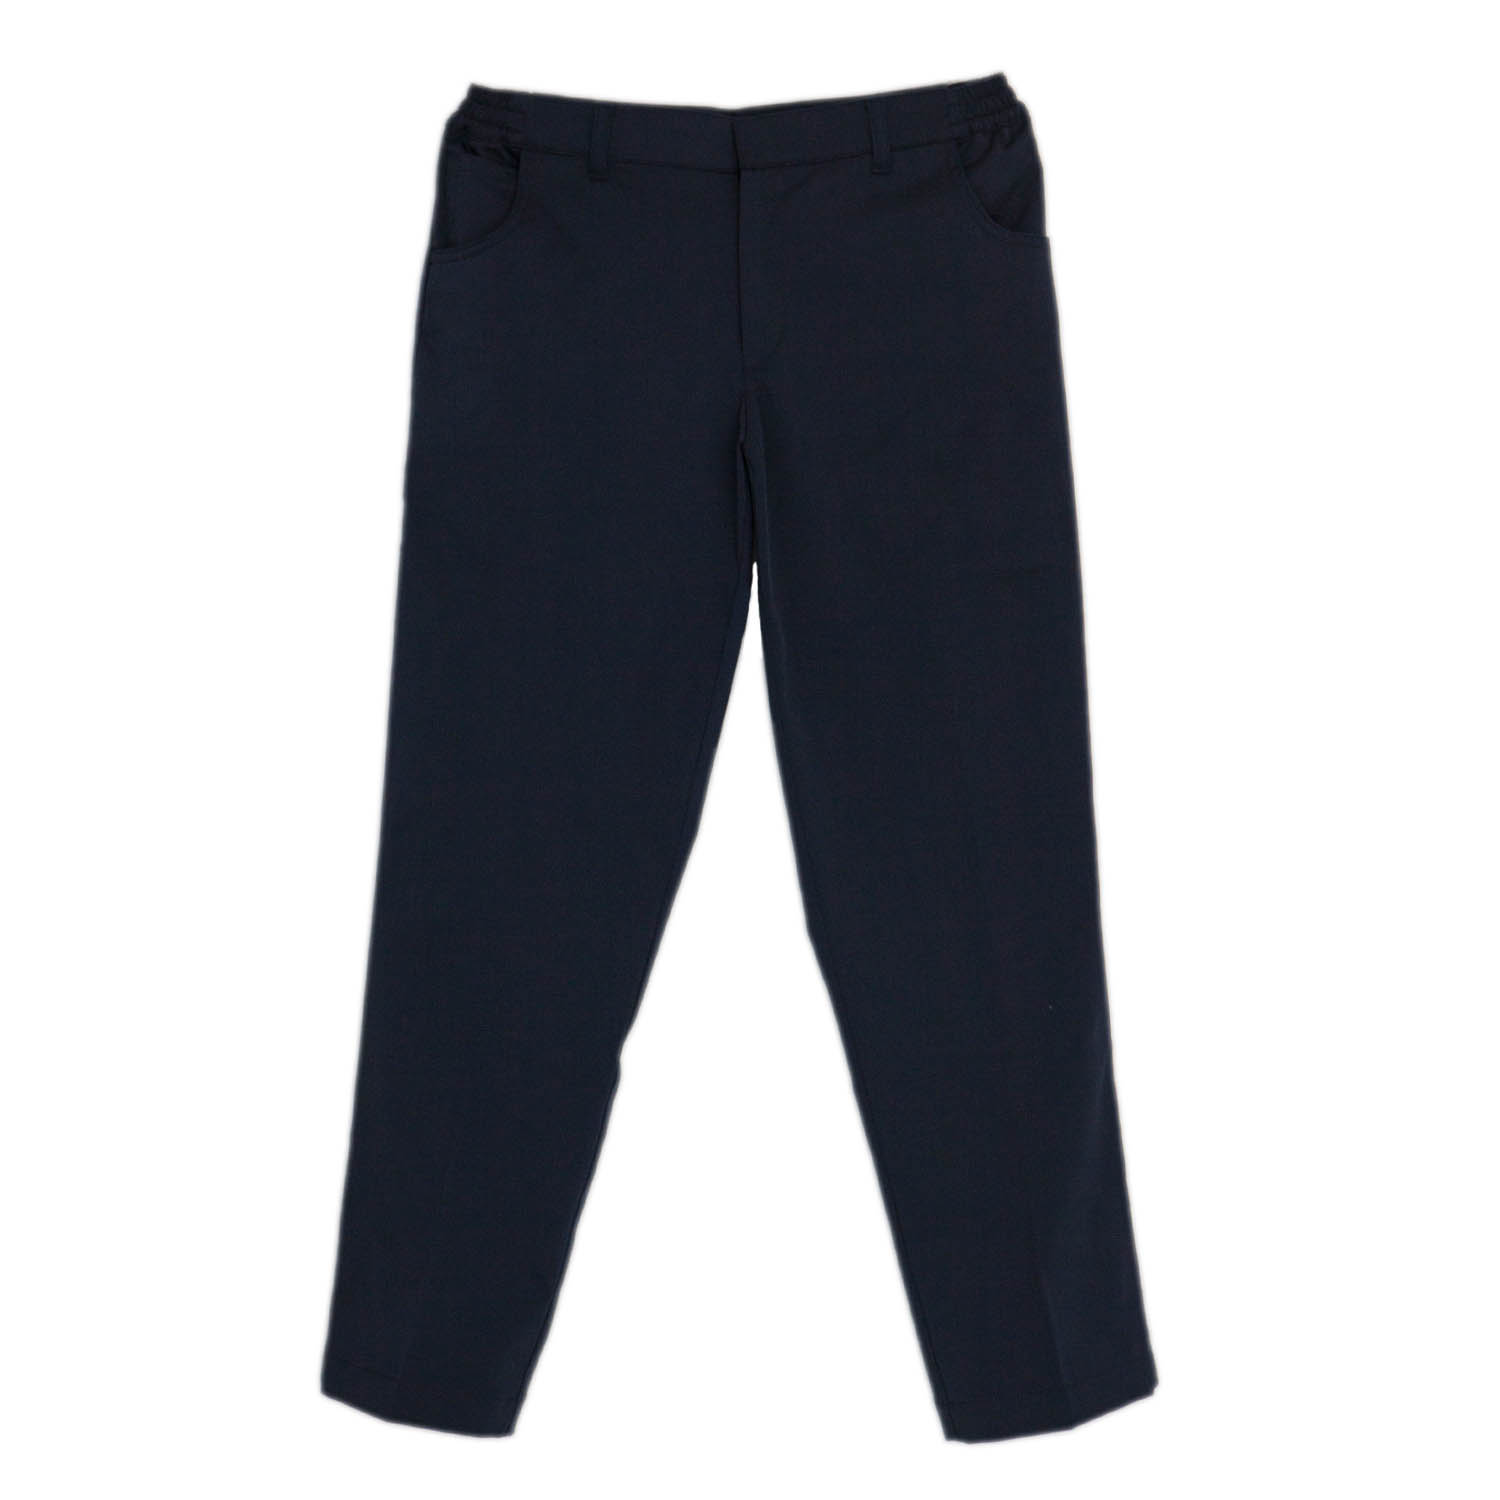 Boys Navy Blue Trouser Slim Cut Boys